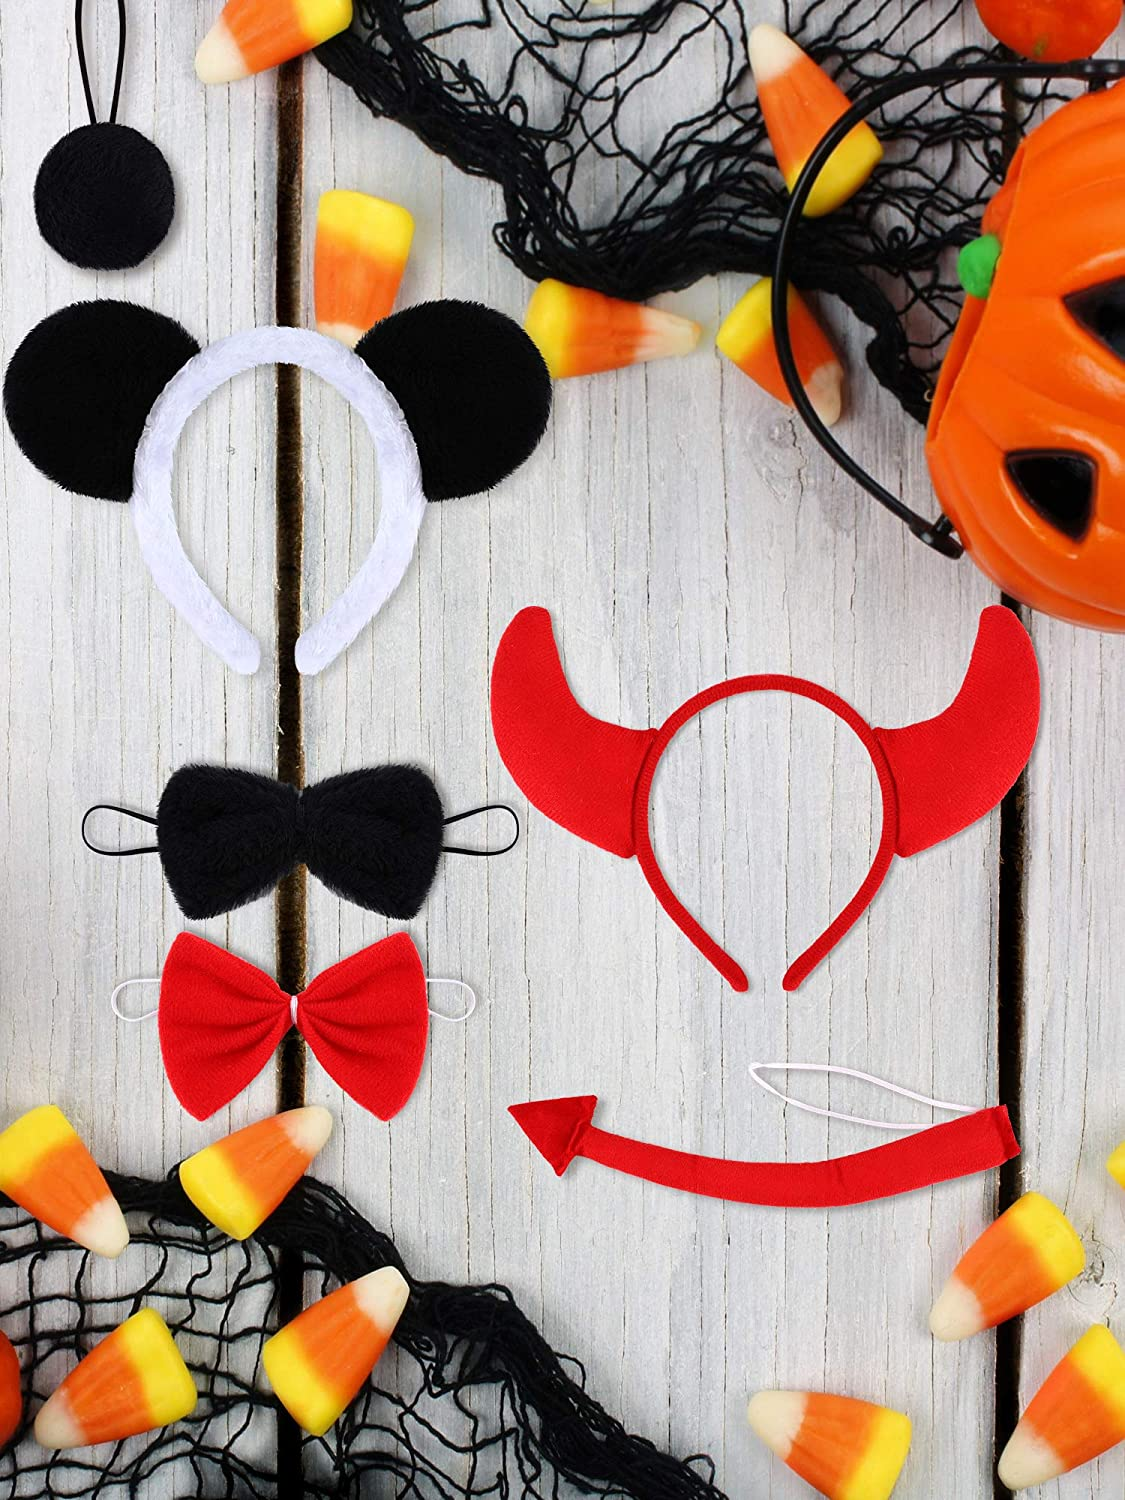 6 Pieces Halloween Costume Kit Panda Bull Ear Headband Tail Bow Tie Cosplay Accessories for Party Favors